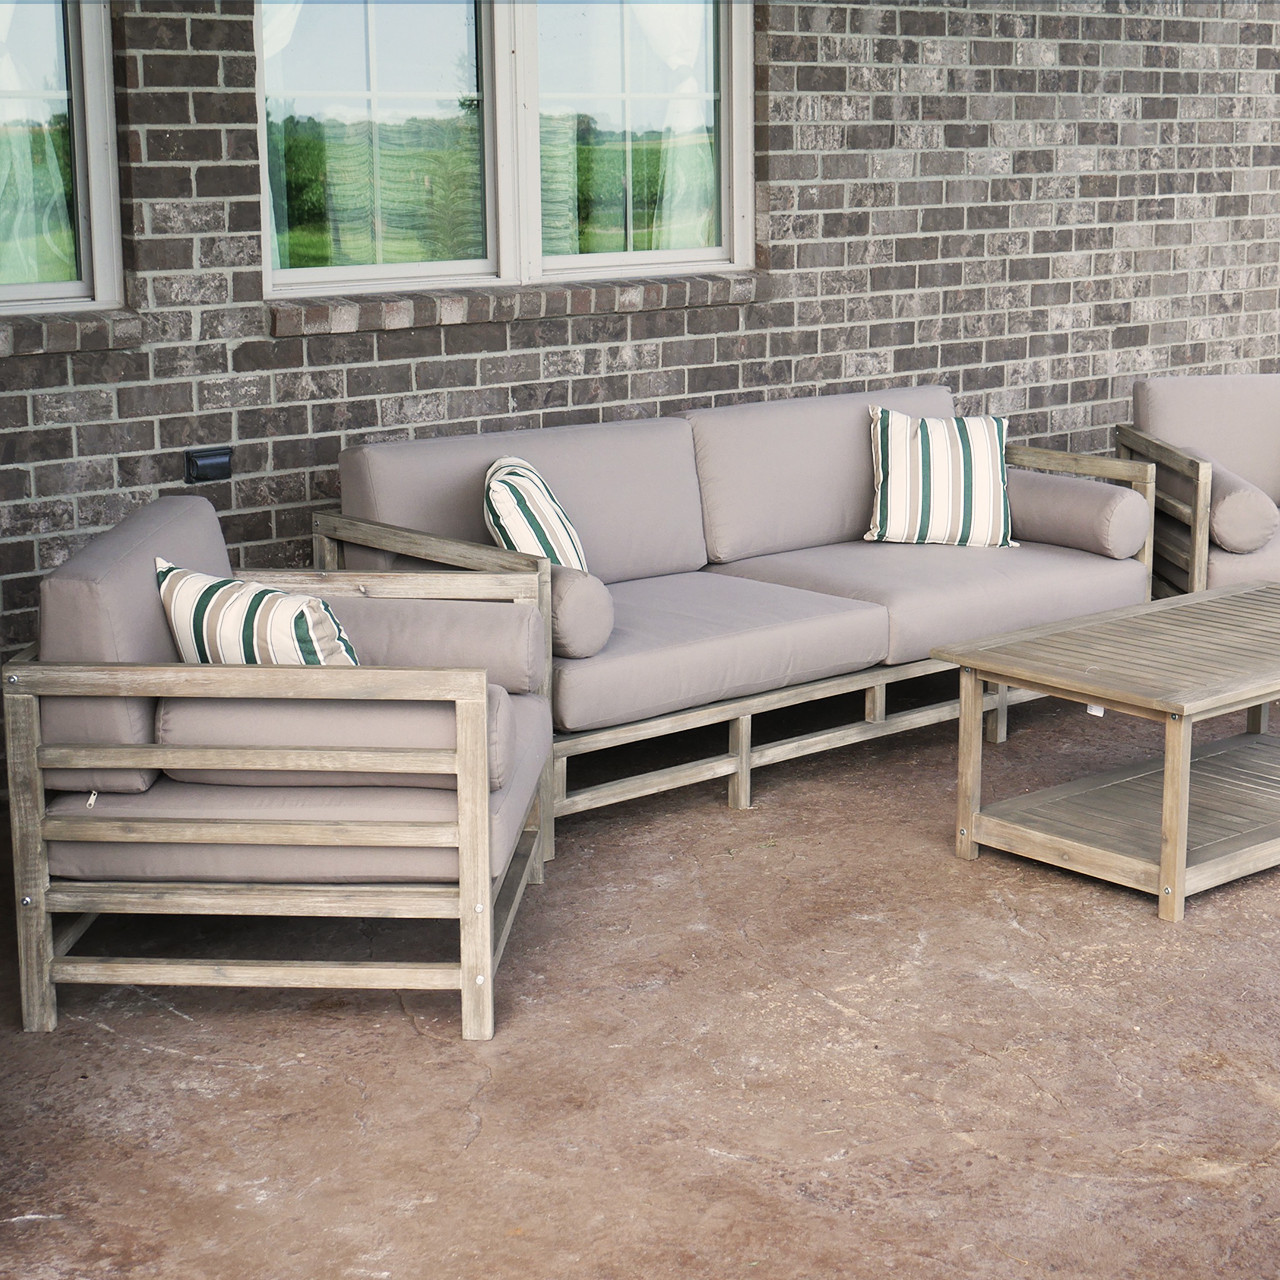 Grand Haven 4-Piece Acacia Wood Outdoor Patio Sofa Set With Table